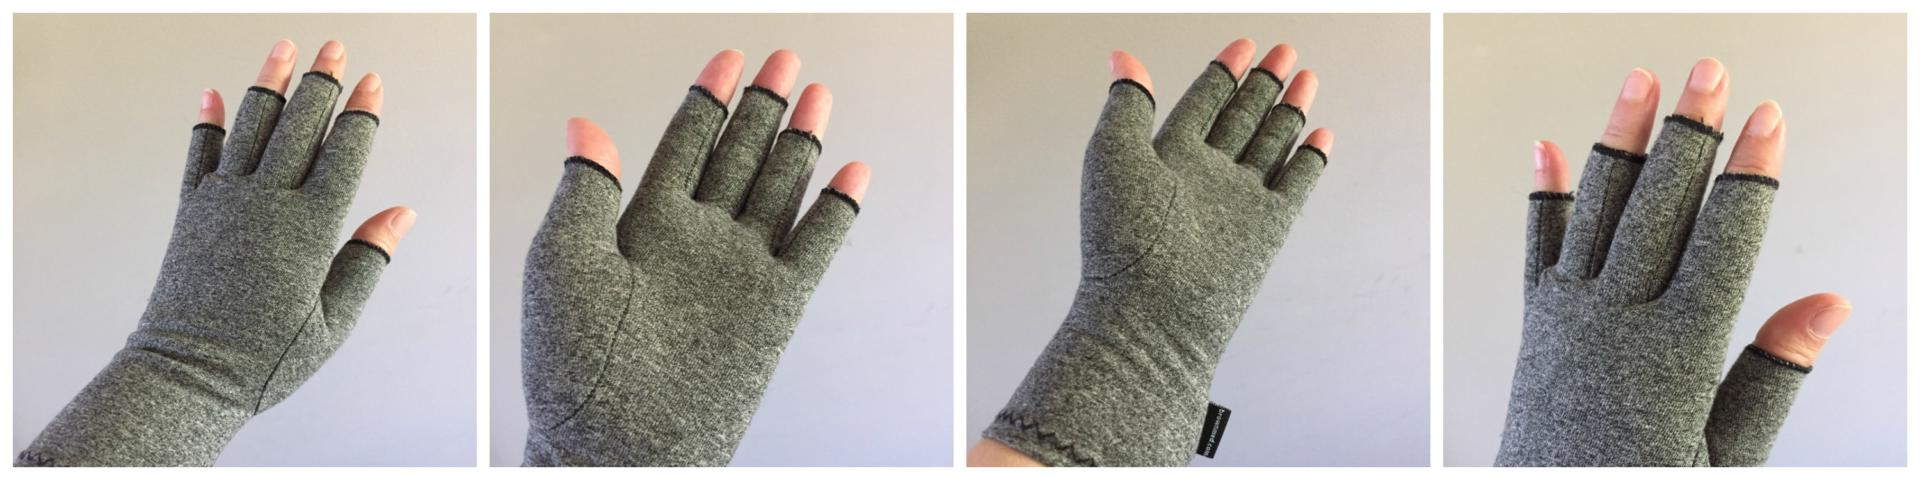 4 images of IMAK compression gloves